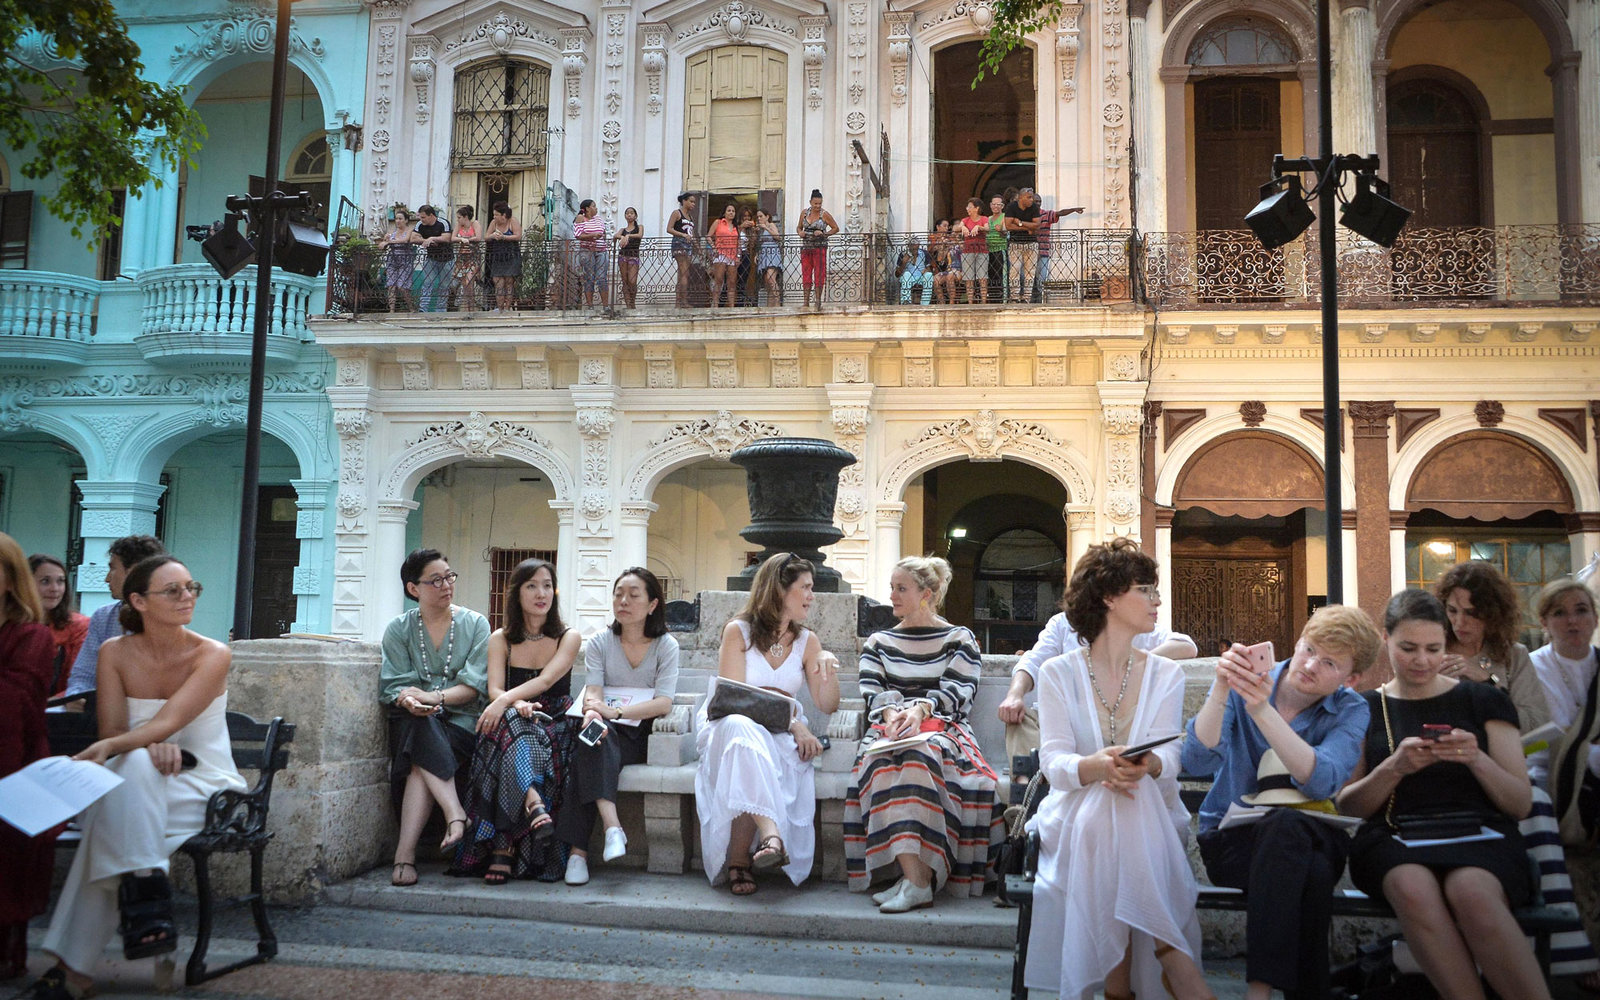 Chanel Hosts First Fashion Show in Cuba | Travel + Leisure